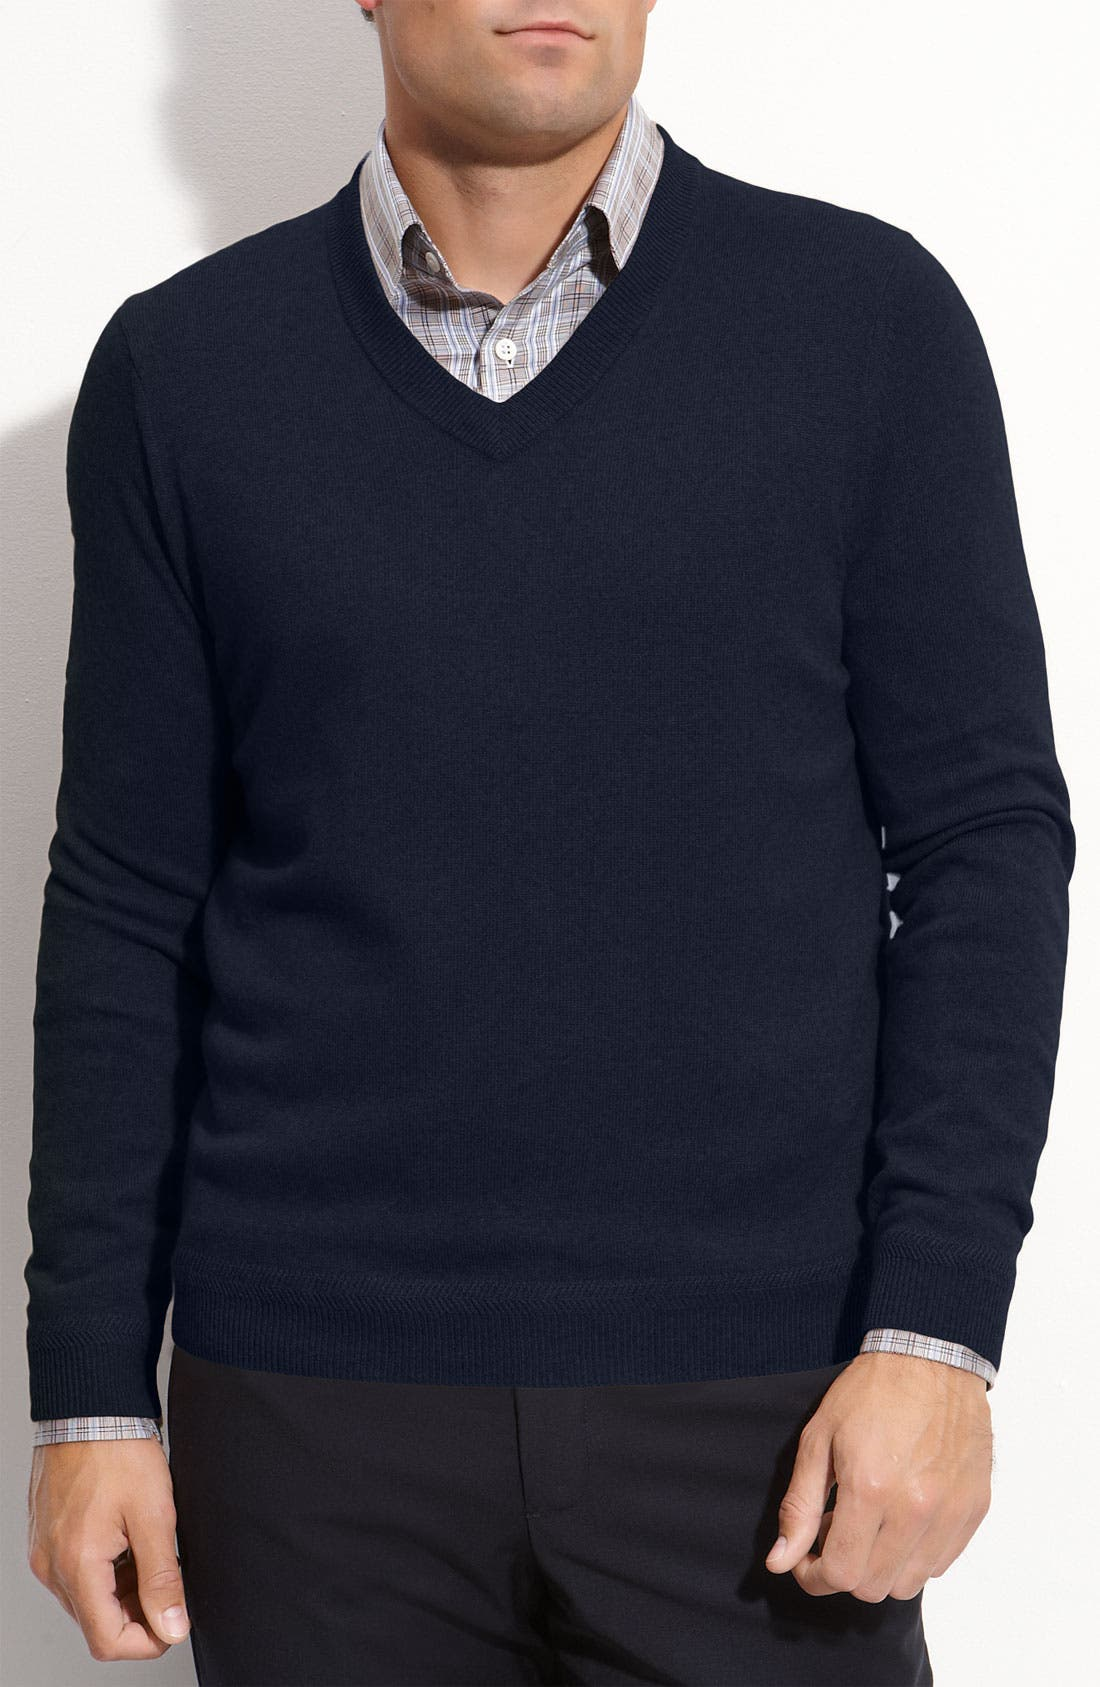 Alternate Image 1 Selected - John W. Nordstrom® V-Neck Cashmere Sweater